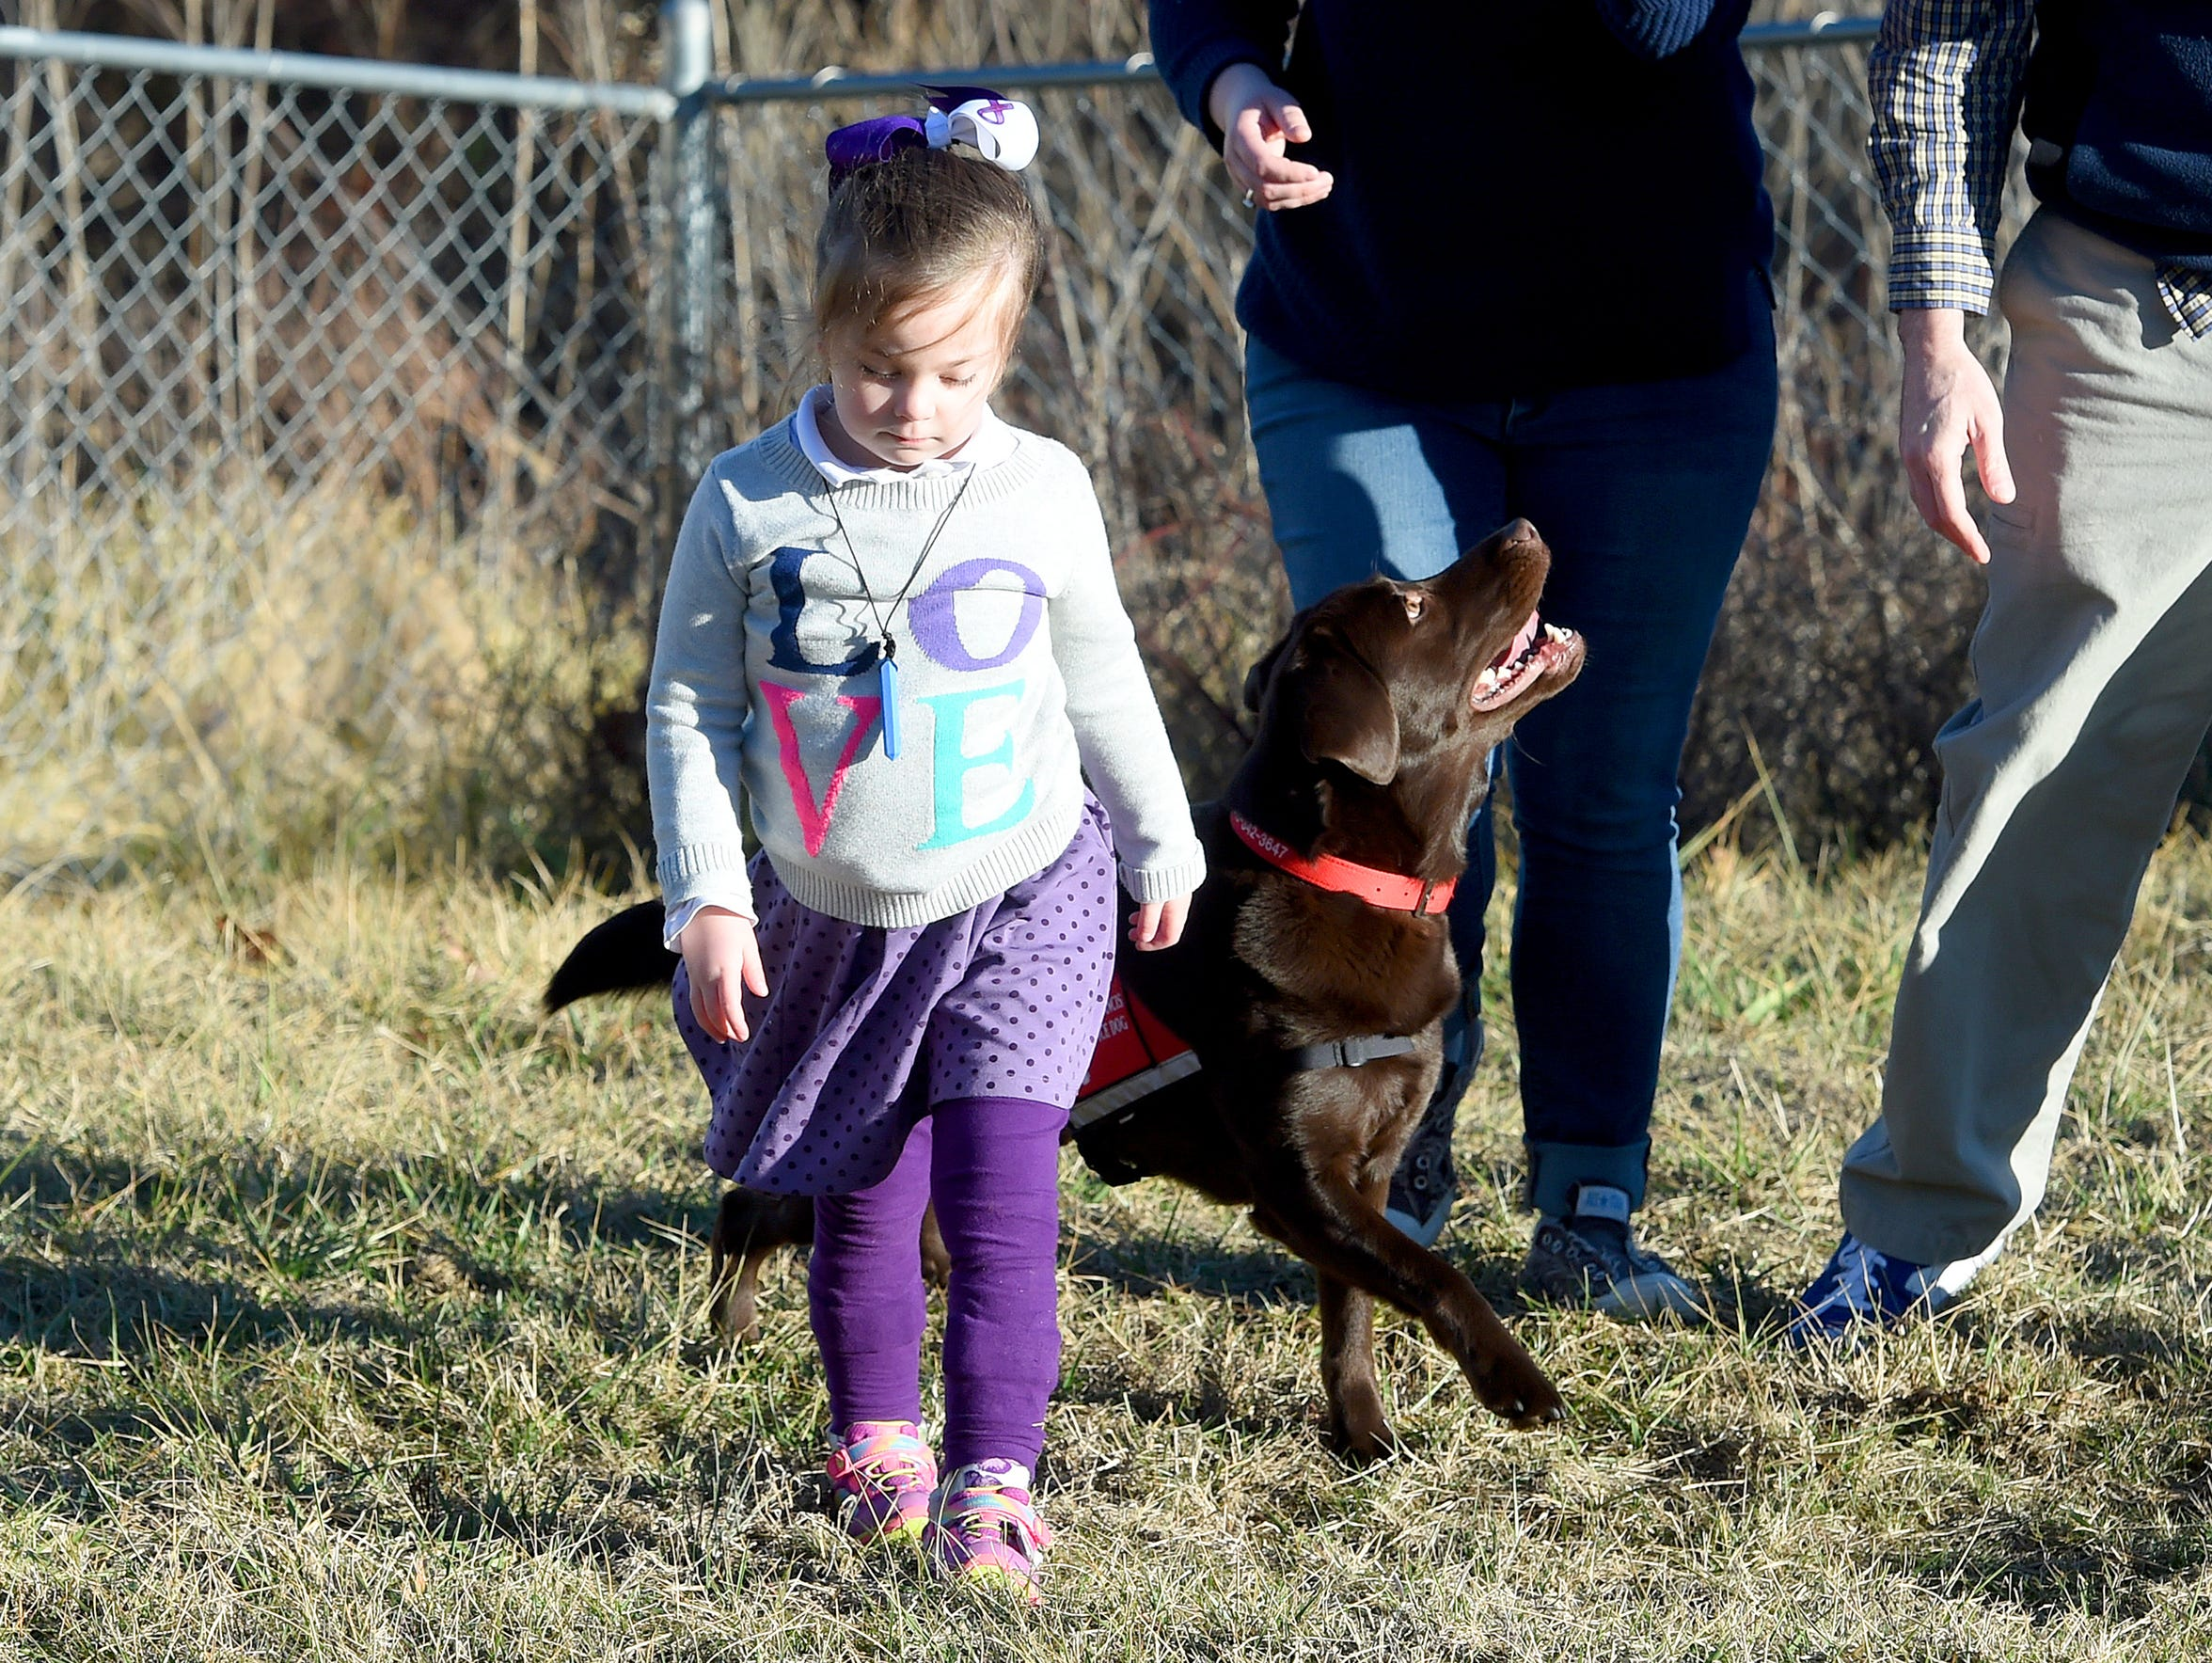 Five-year-old Lucy Rhoden spends time outside with